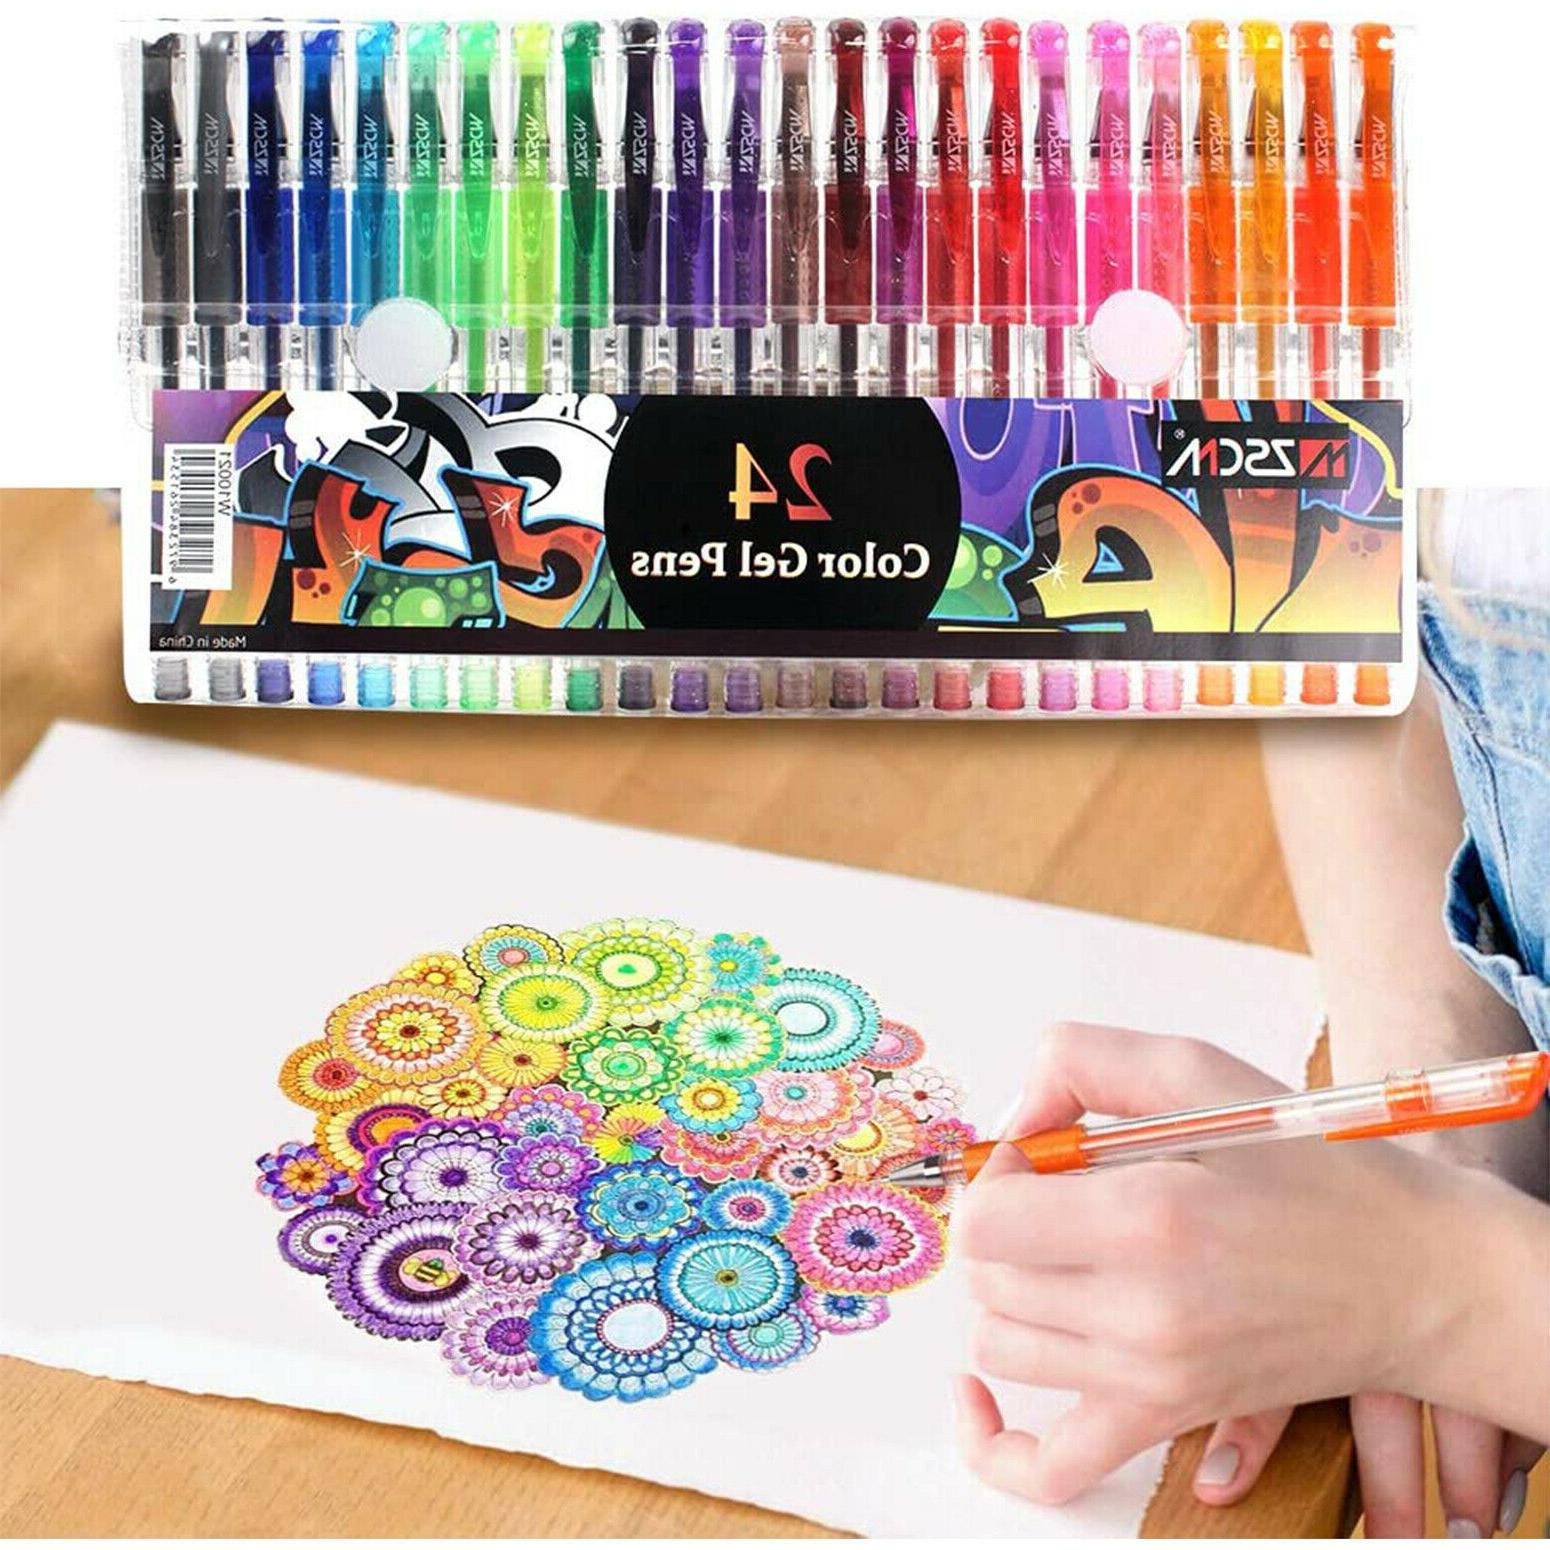 Gel Colored Glitter For Coloring Books Kids Adult